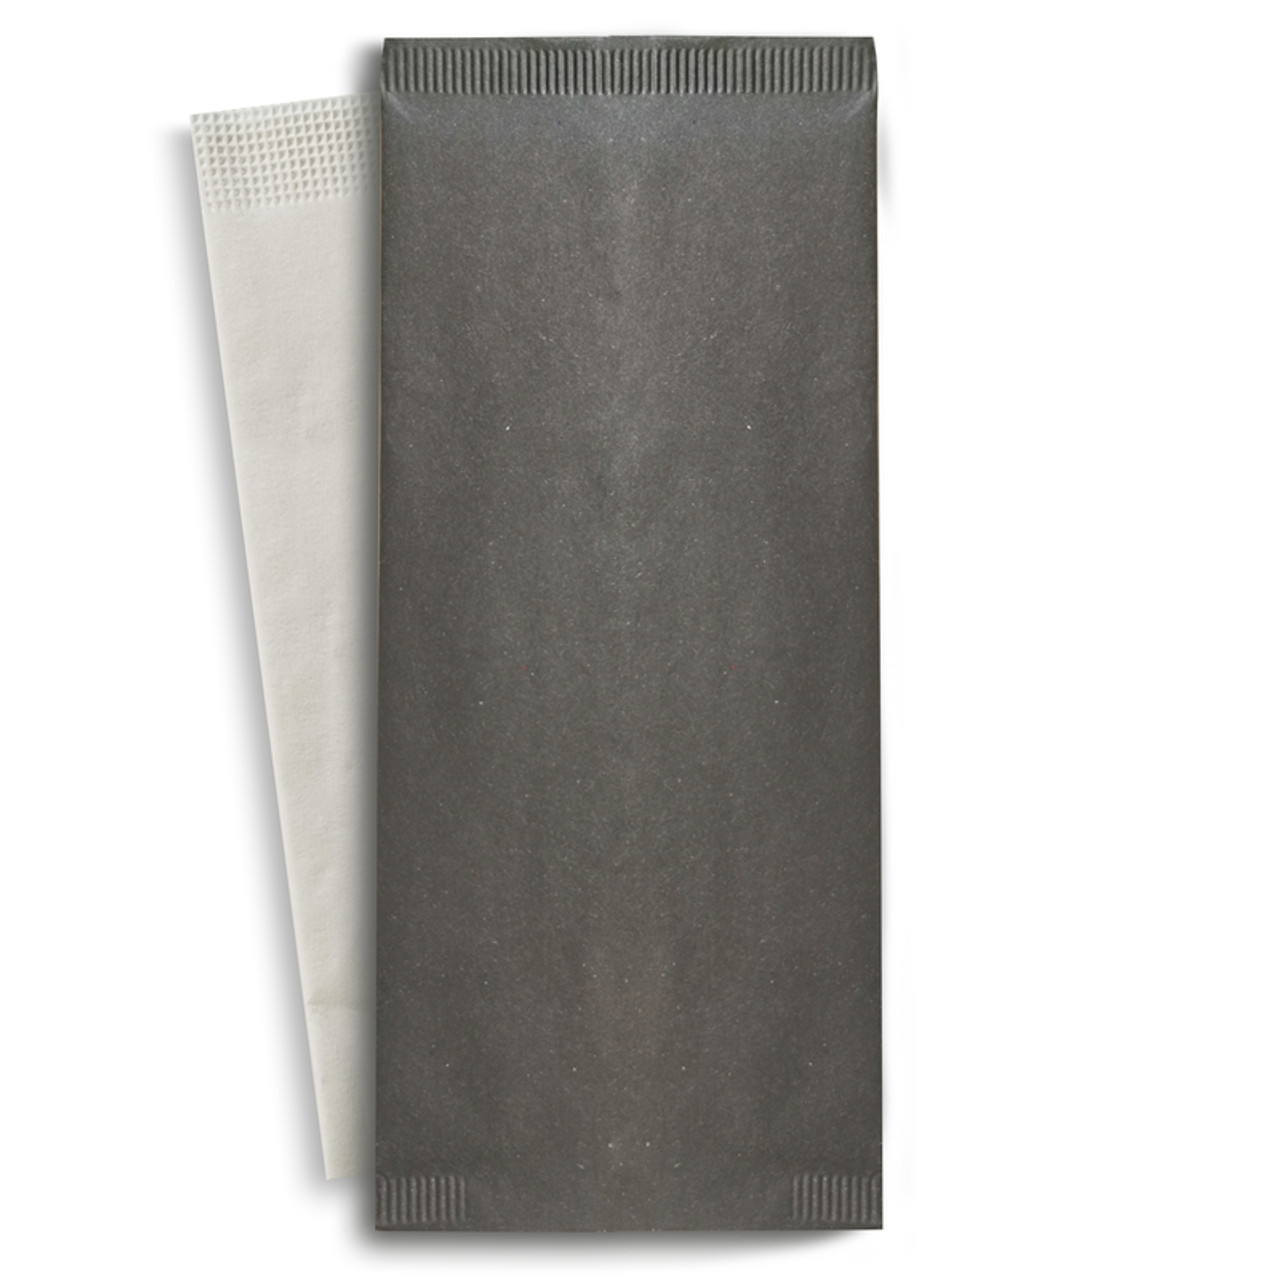 Black Cutlery Paper Bag With White Napkin 2-Ply - L:15 x W:15.1in